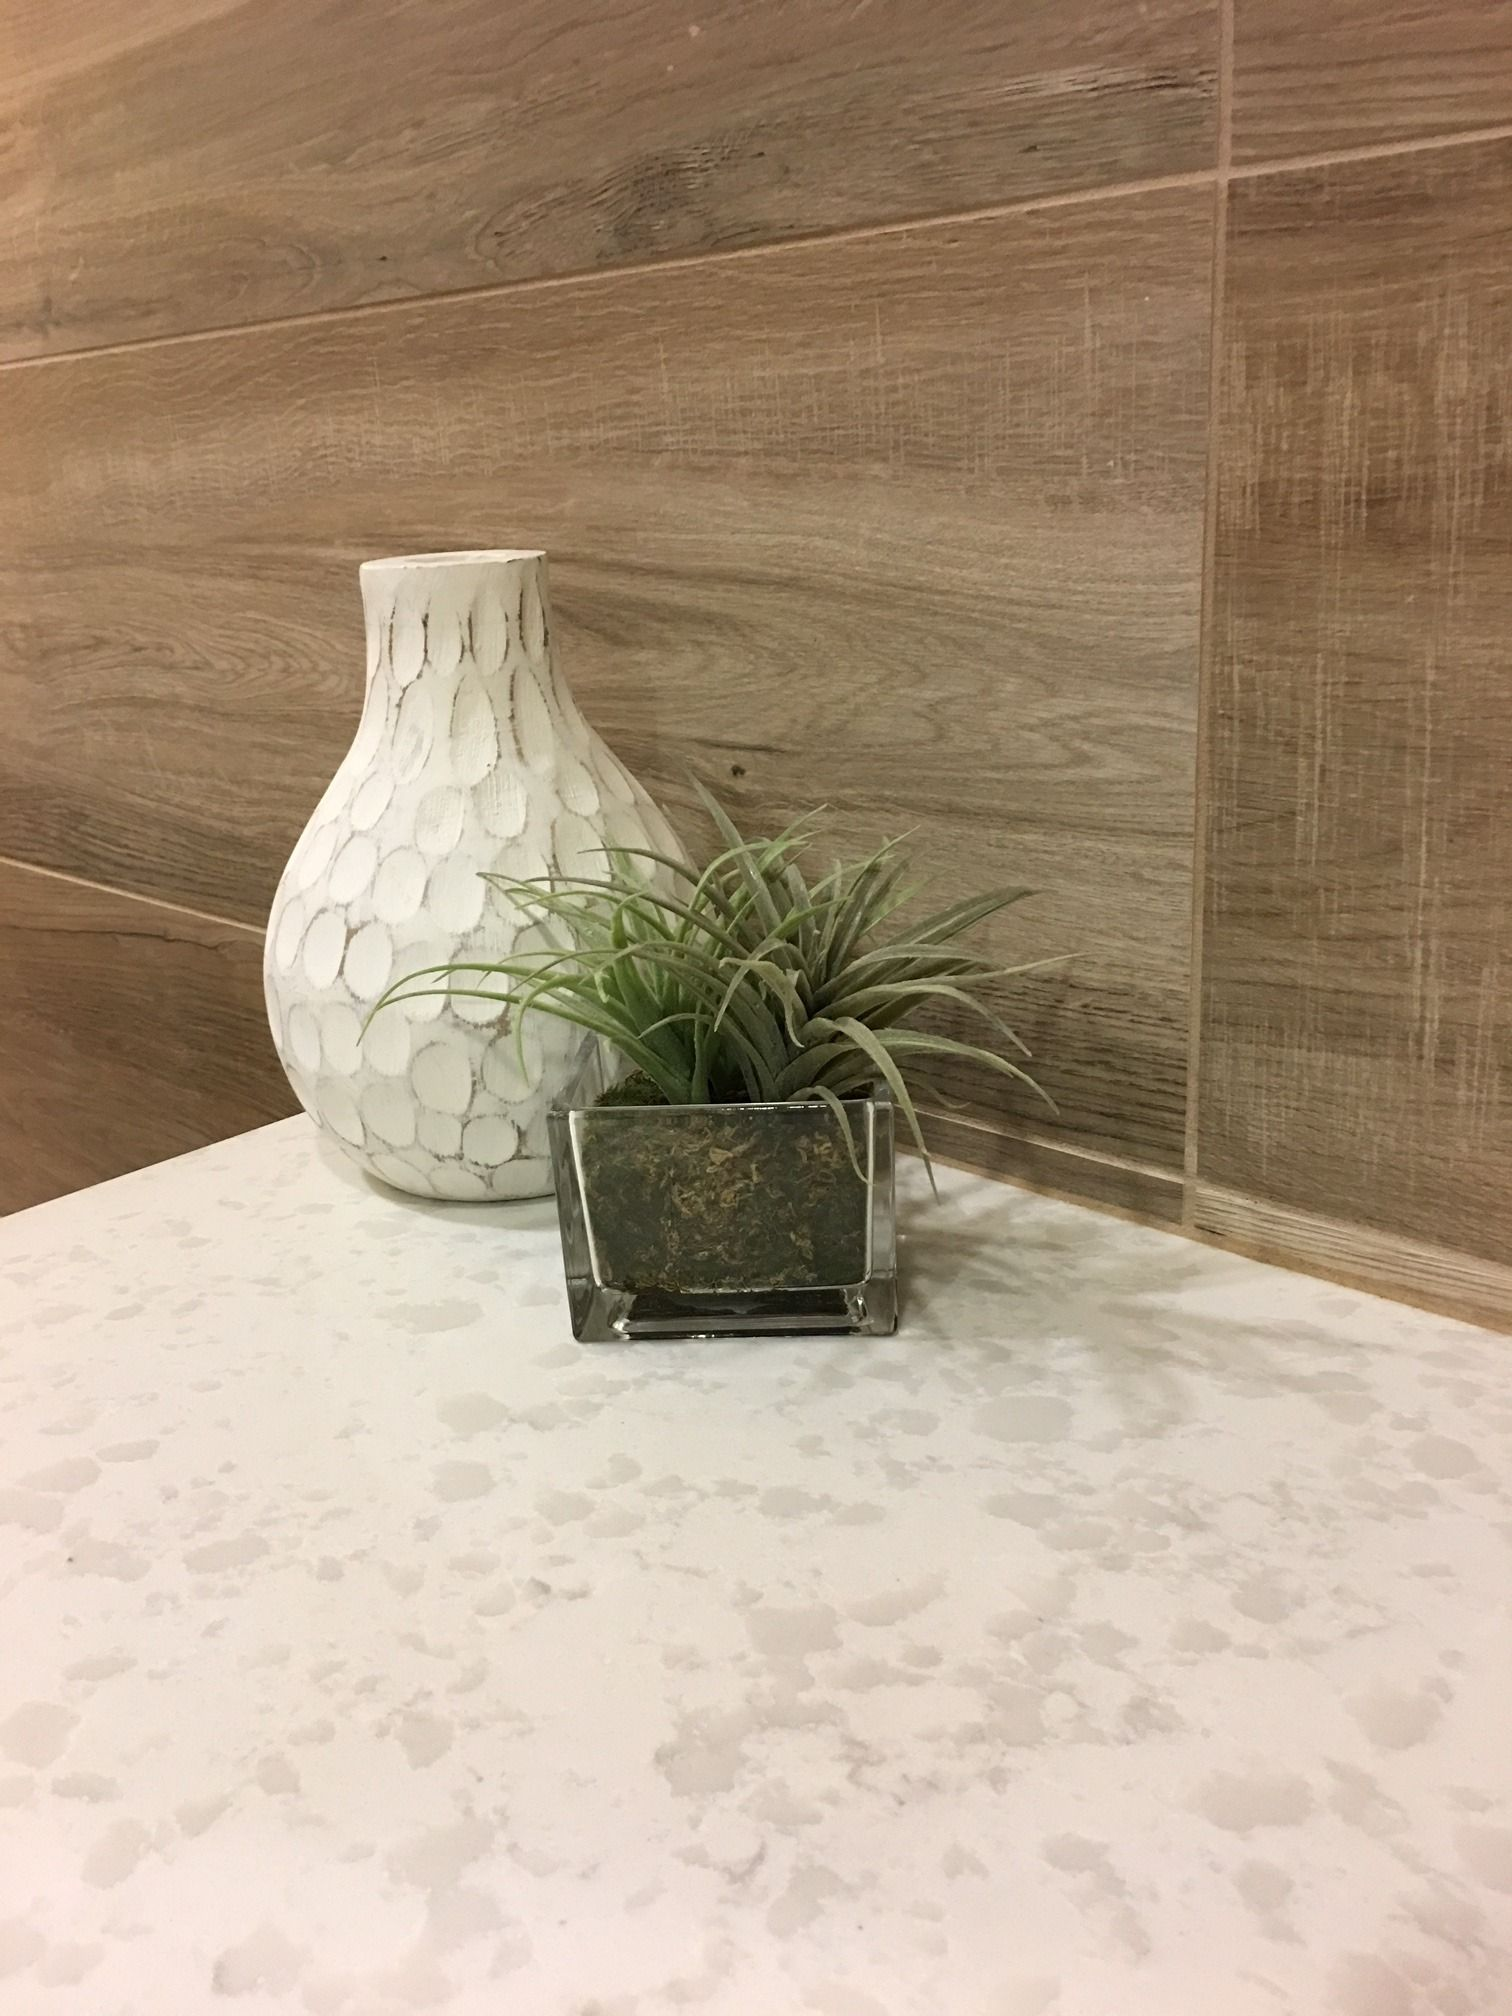 Lovin This Combo Of Pegasus Quartz (counter) And Aequa Silva #porcelaintile  On The Walls! #goQuartz Https://www.arizonatile.com/en/products/quartz/ Pegasus